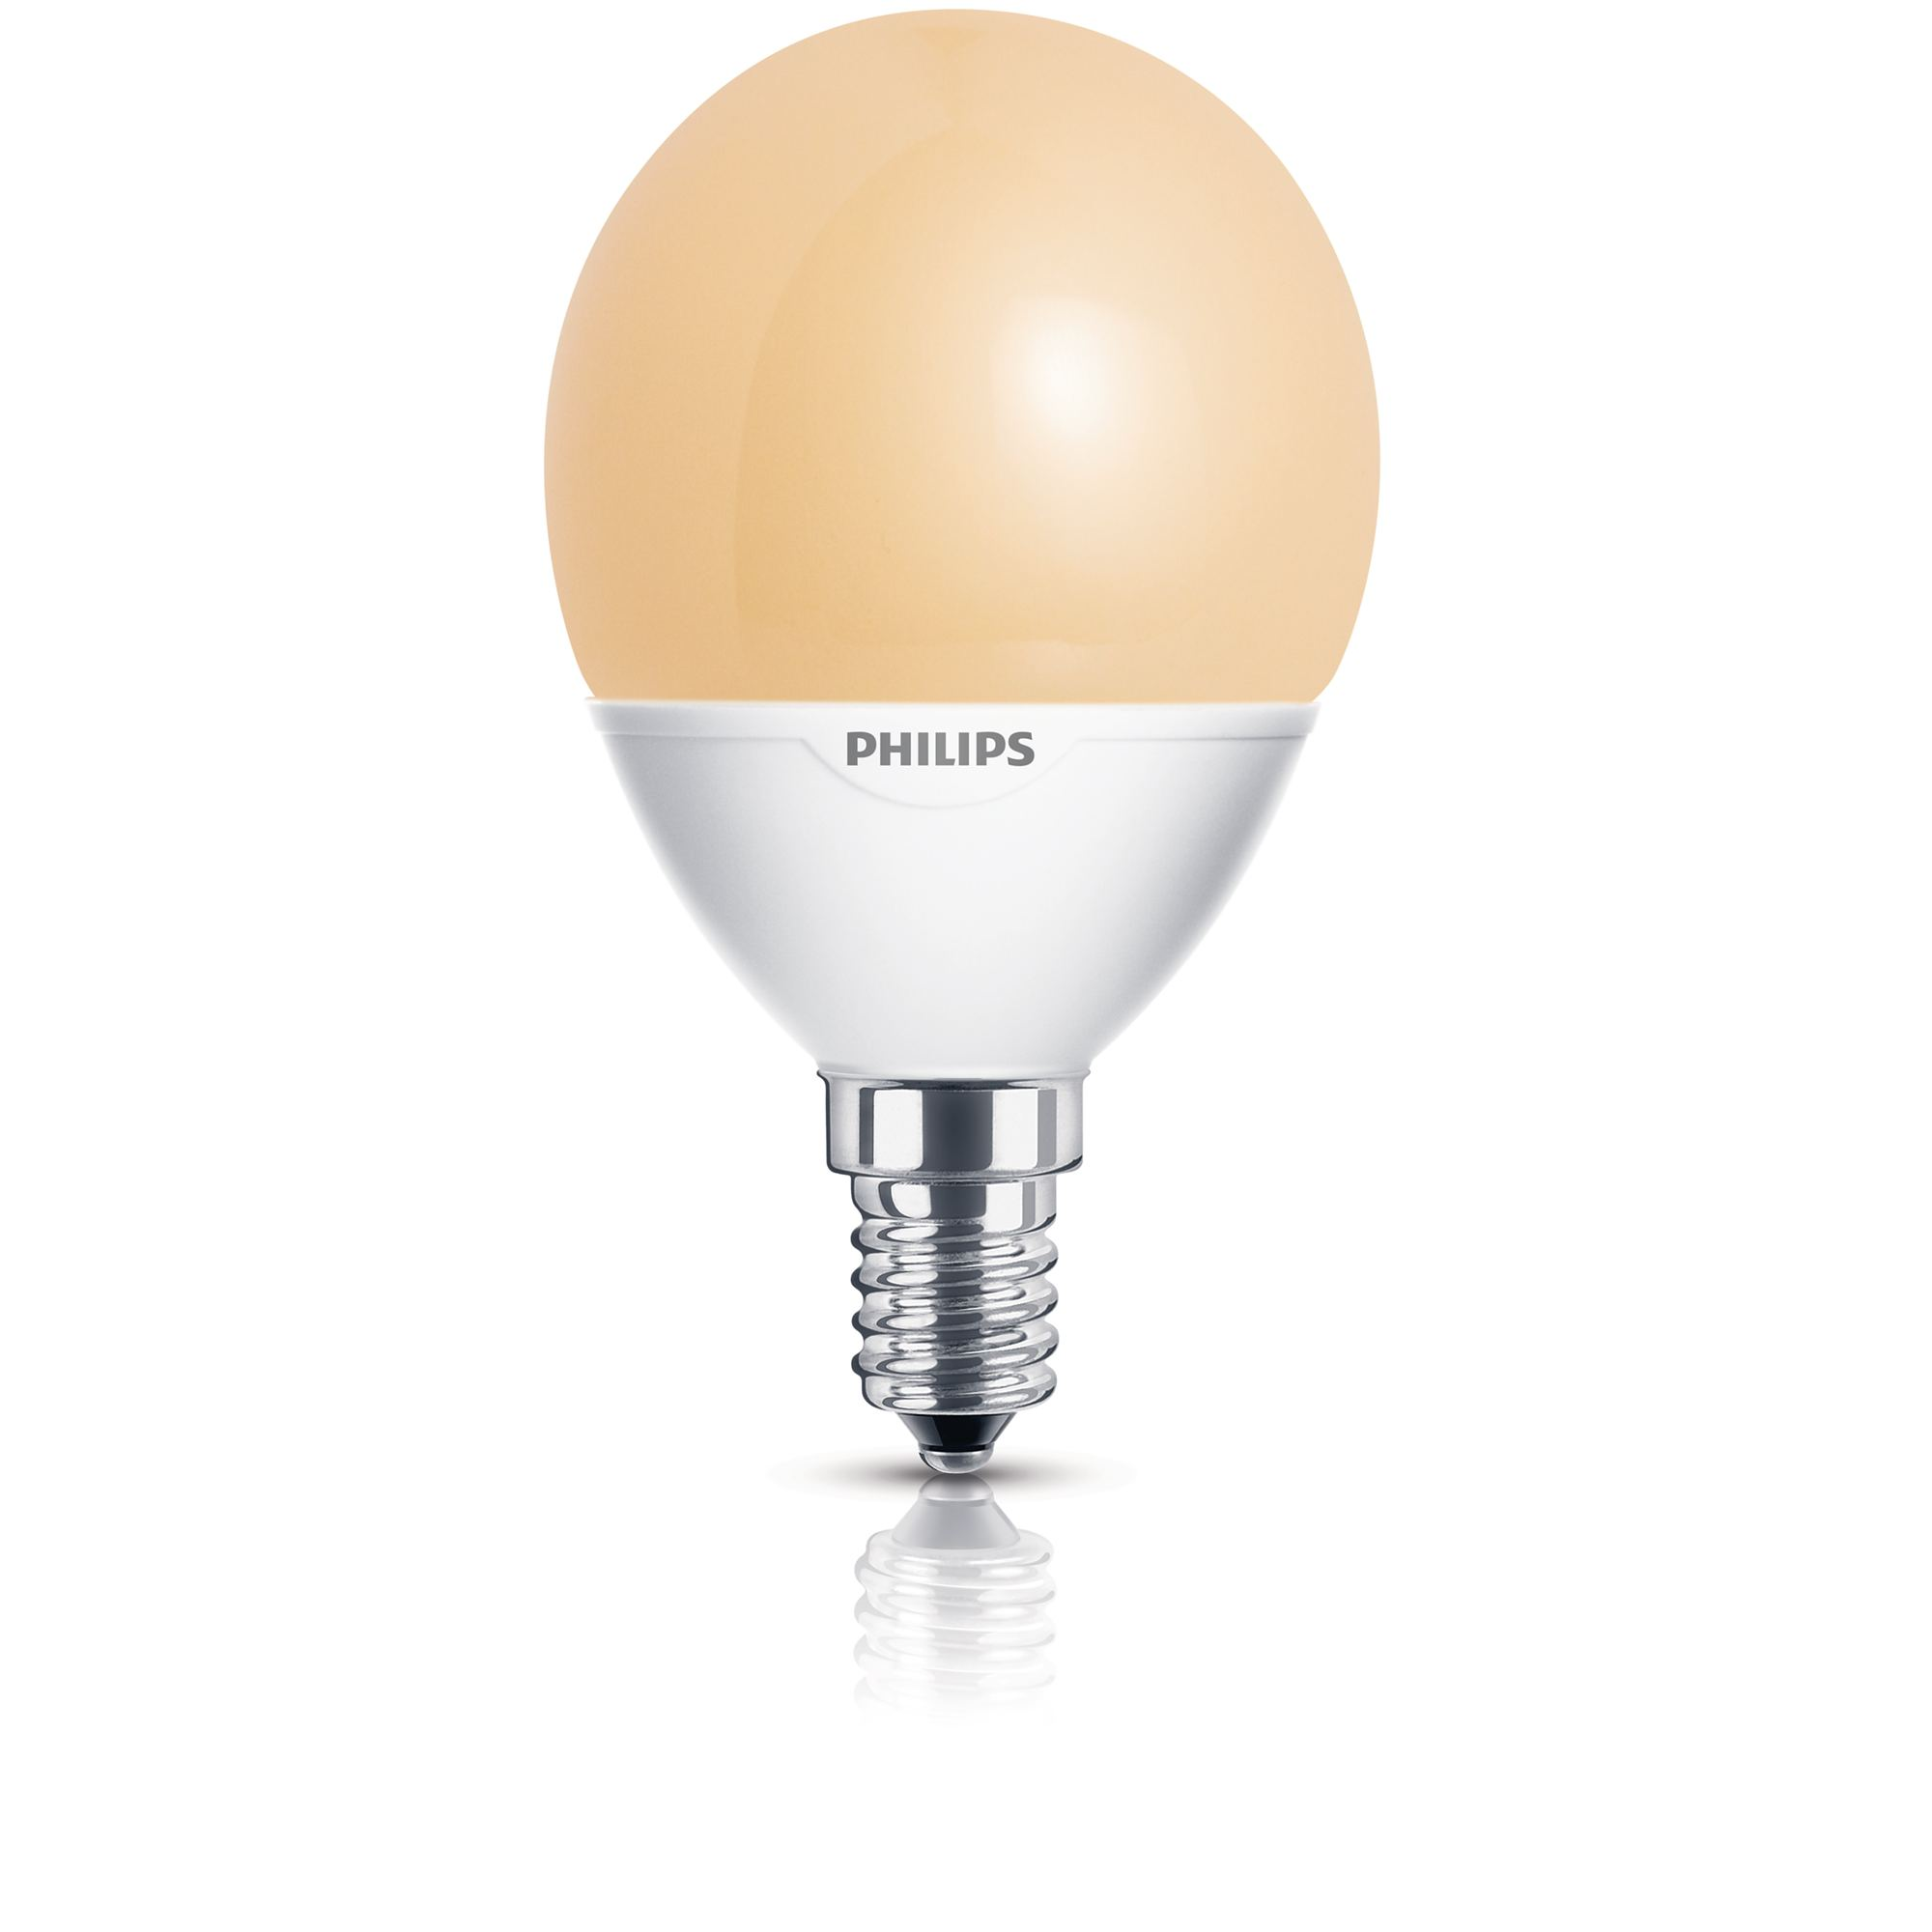 Philips Softone Flame Philips Spaarlamp Kogel 7w 27w E14 Fitting Flame Kopen